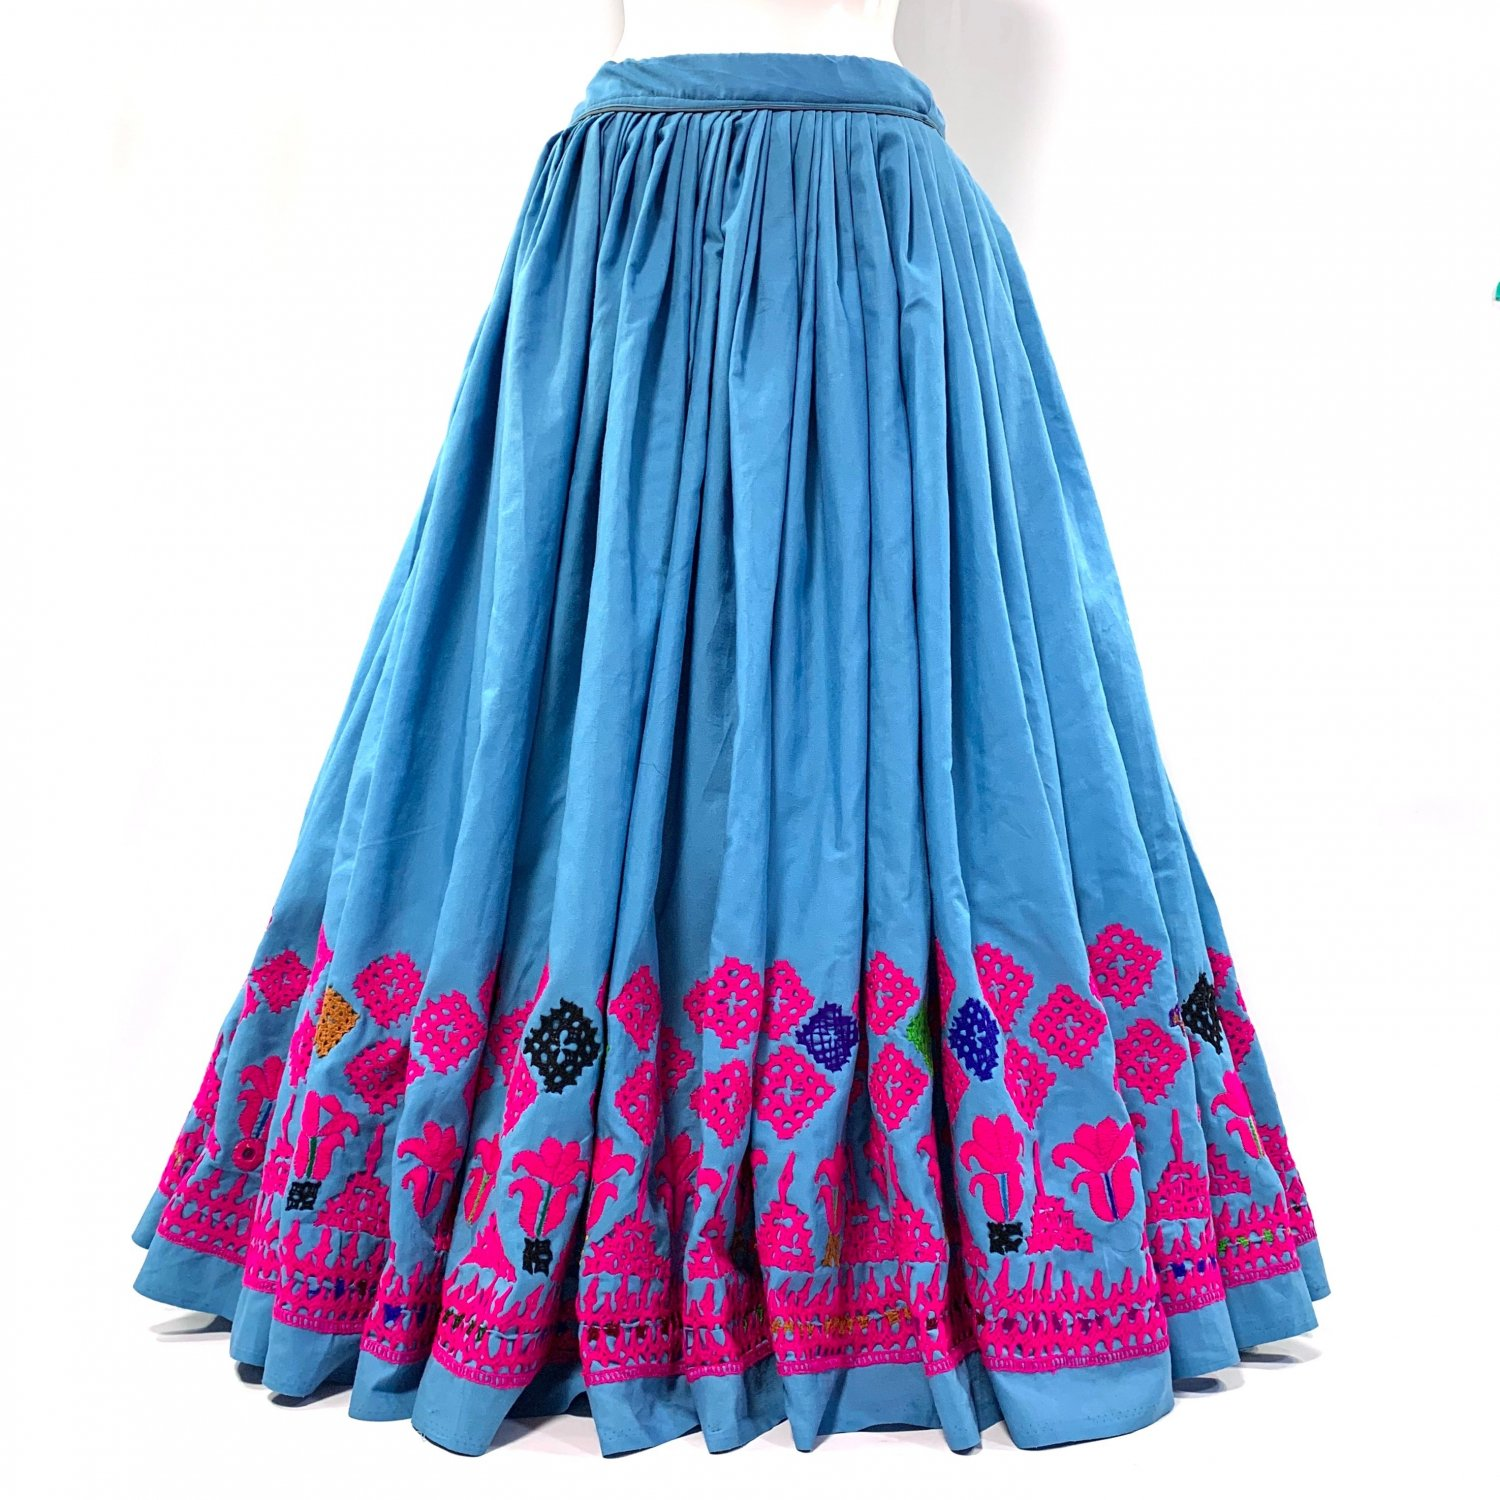 <img class='new_mark_img1' src='https://img.shop-pro.jp/img/new/icons1.gif' style='border:none;display:inline;margin:0px;padding:0px;width:auto;' />Kutch gypsy skirt #41 *vintage * カッチ刺繍スカート バンジャラ《水色2》